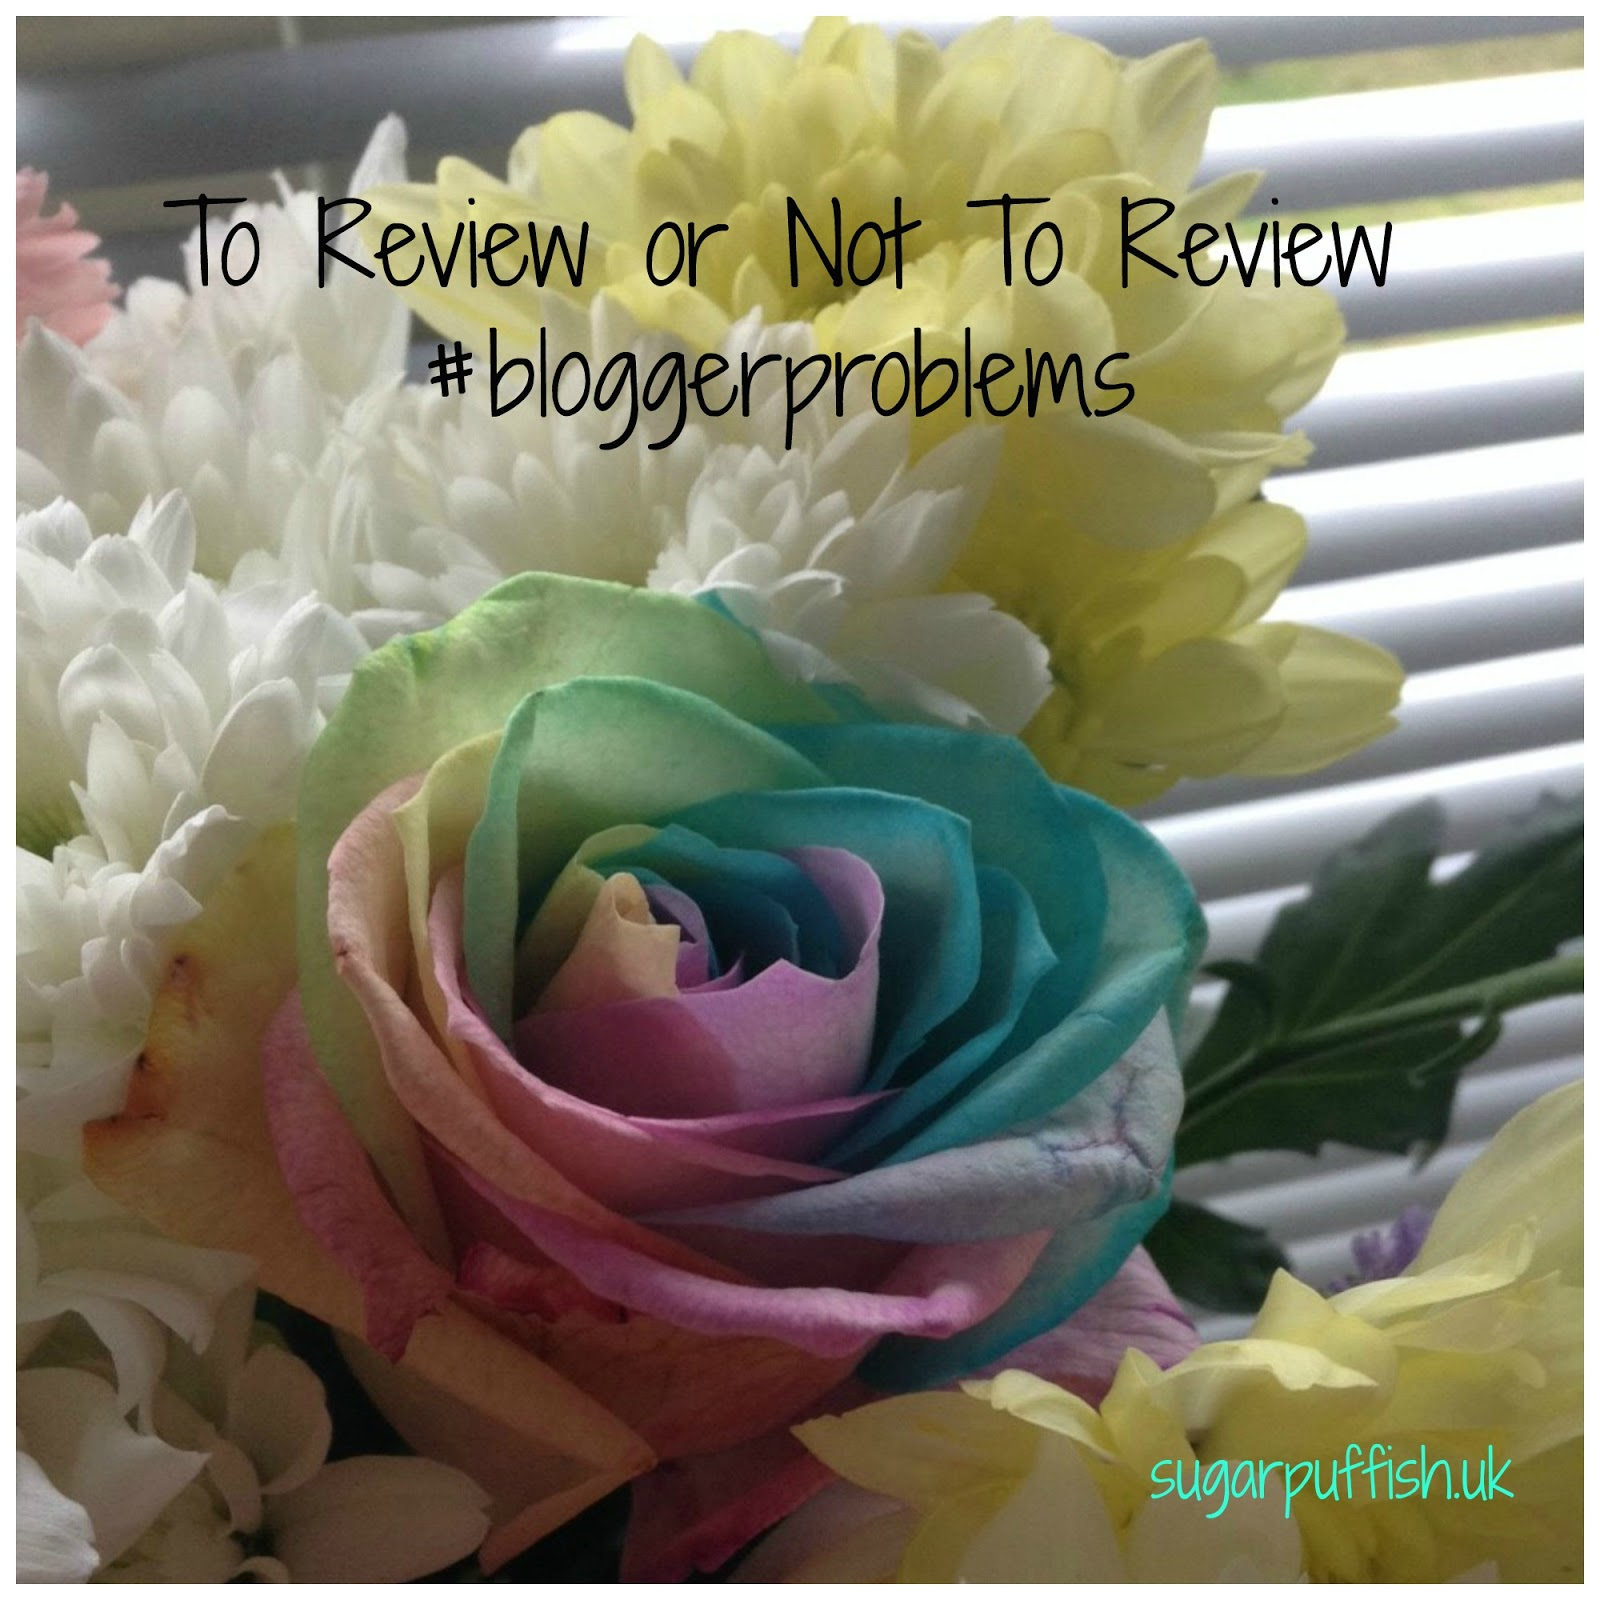 Sugarpuffish - To Review or Not To Review - #bloggerproblems